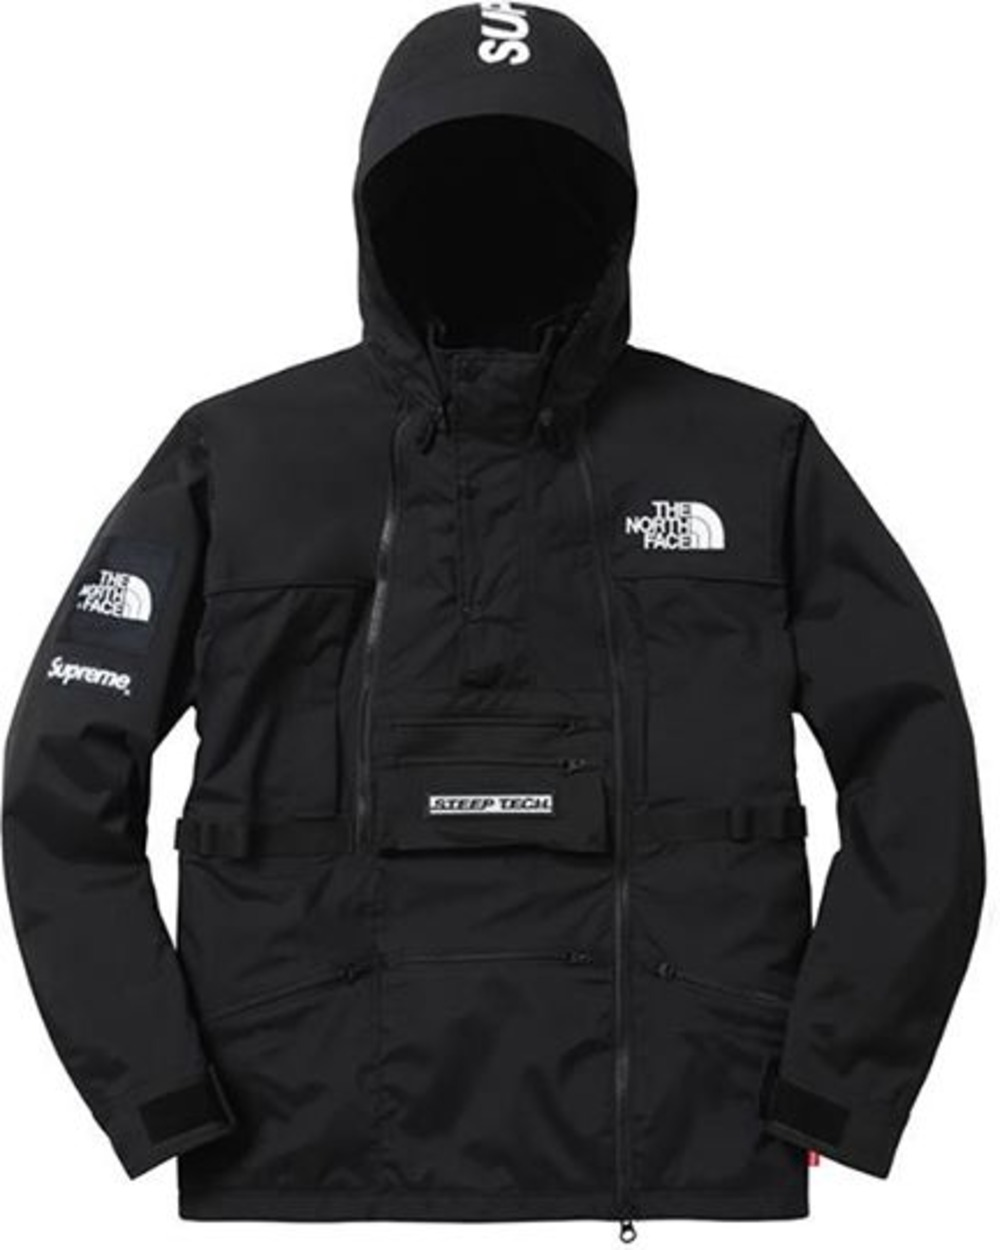 supreme x the north face tnf steep tech jacket l 376117 from pebeef at klekt. Black Bedroom Furniture Sets. Home Design Ideas